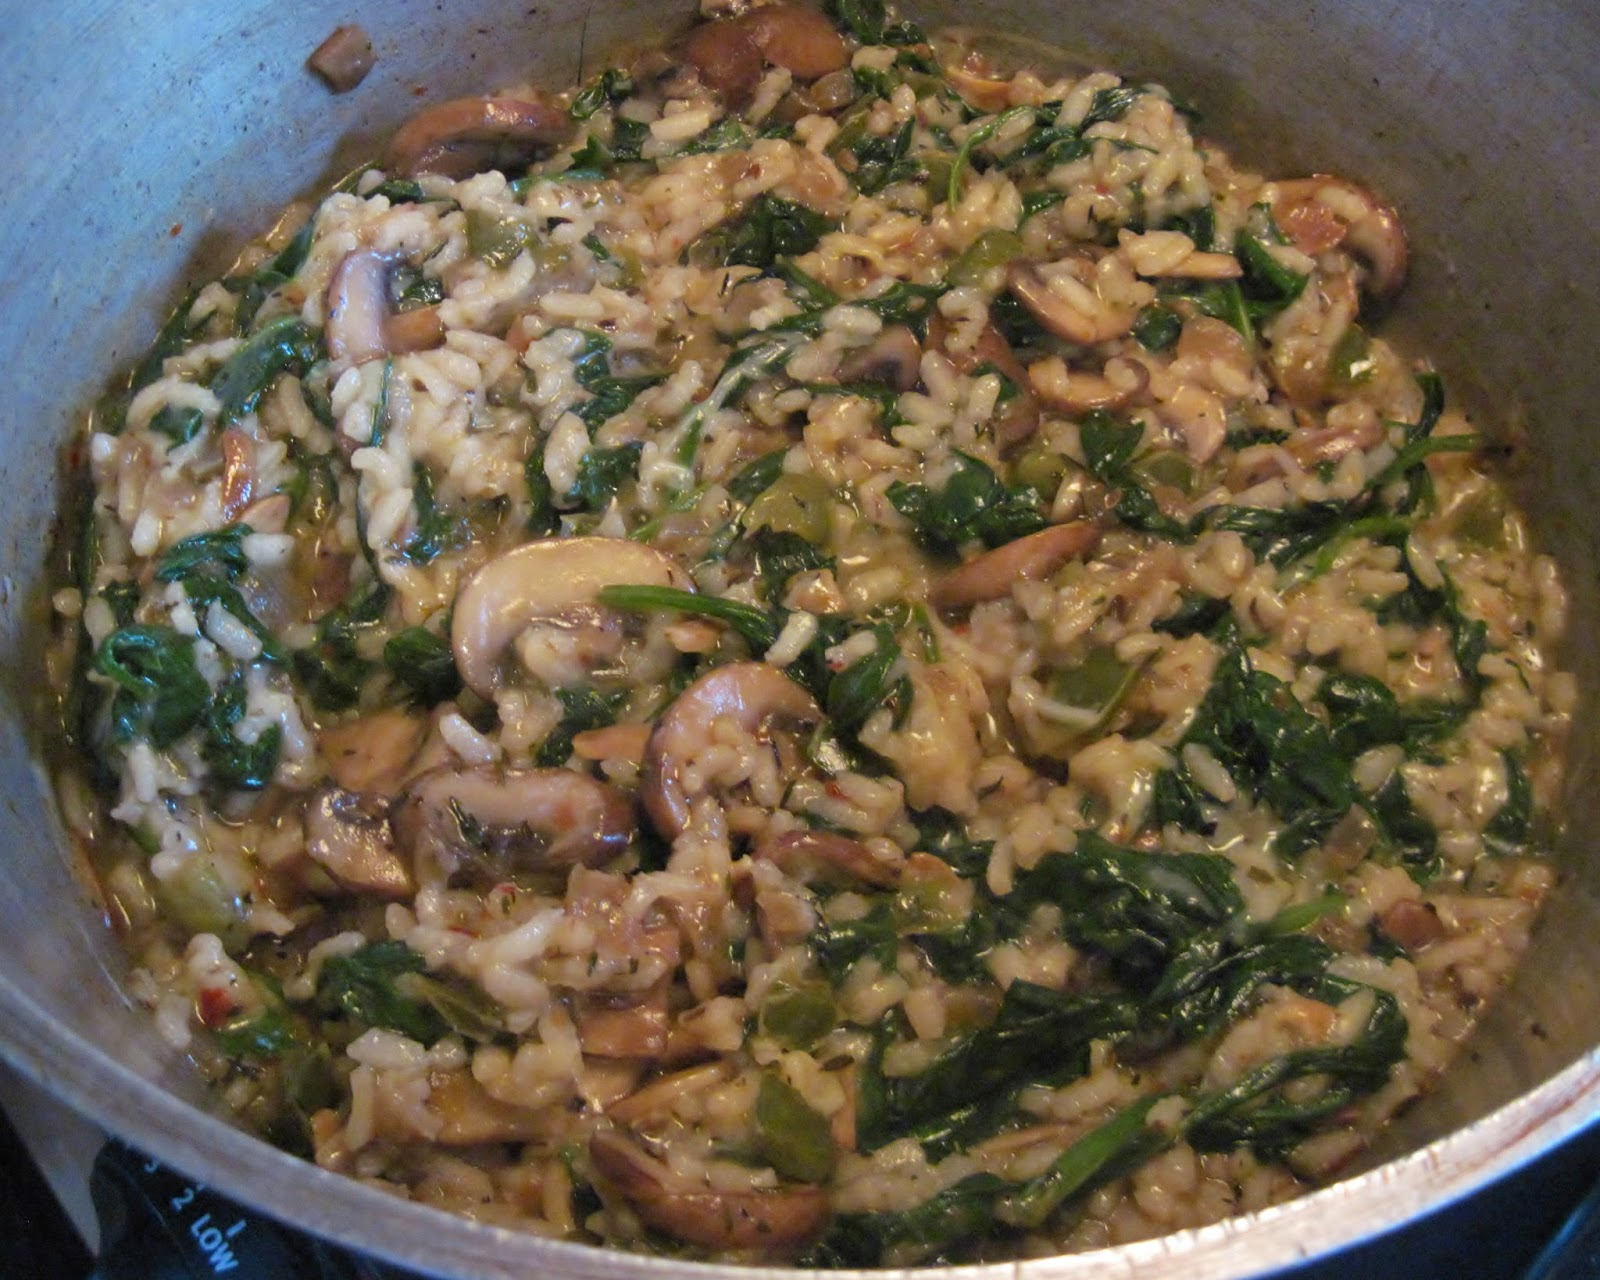 Vodka risotto recipe